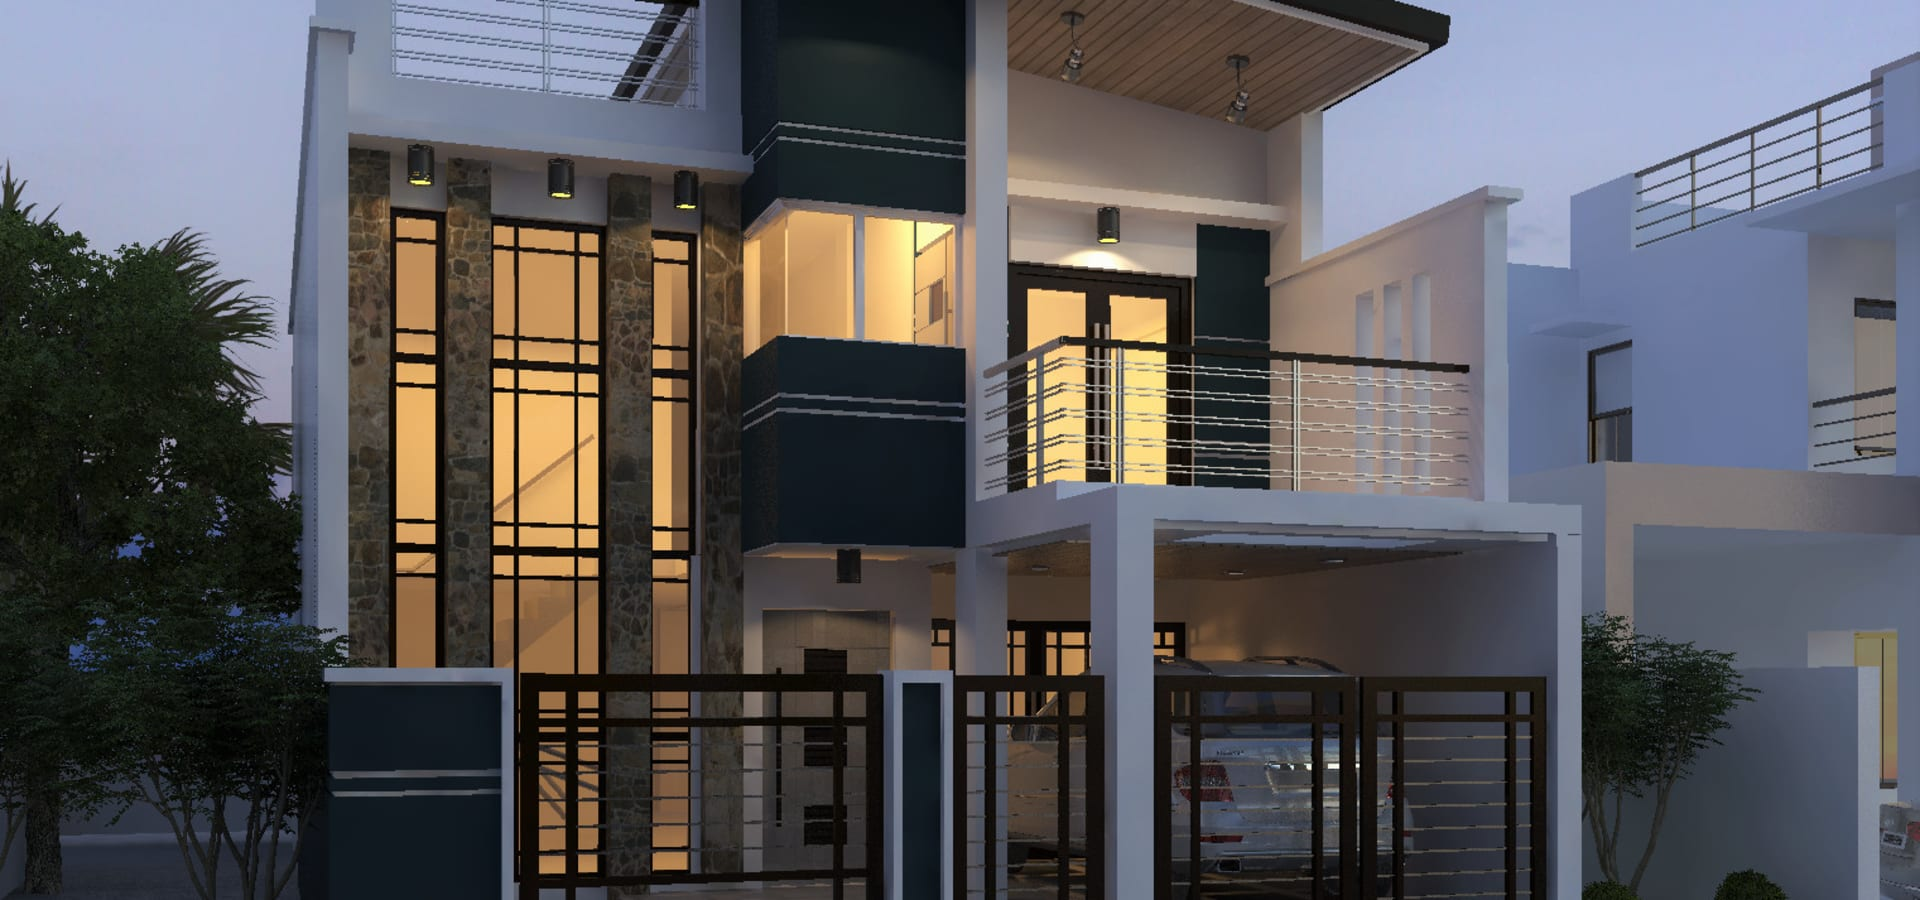 ABG Architects and Builders